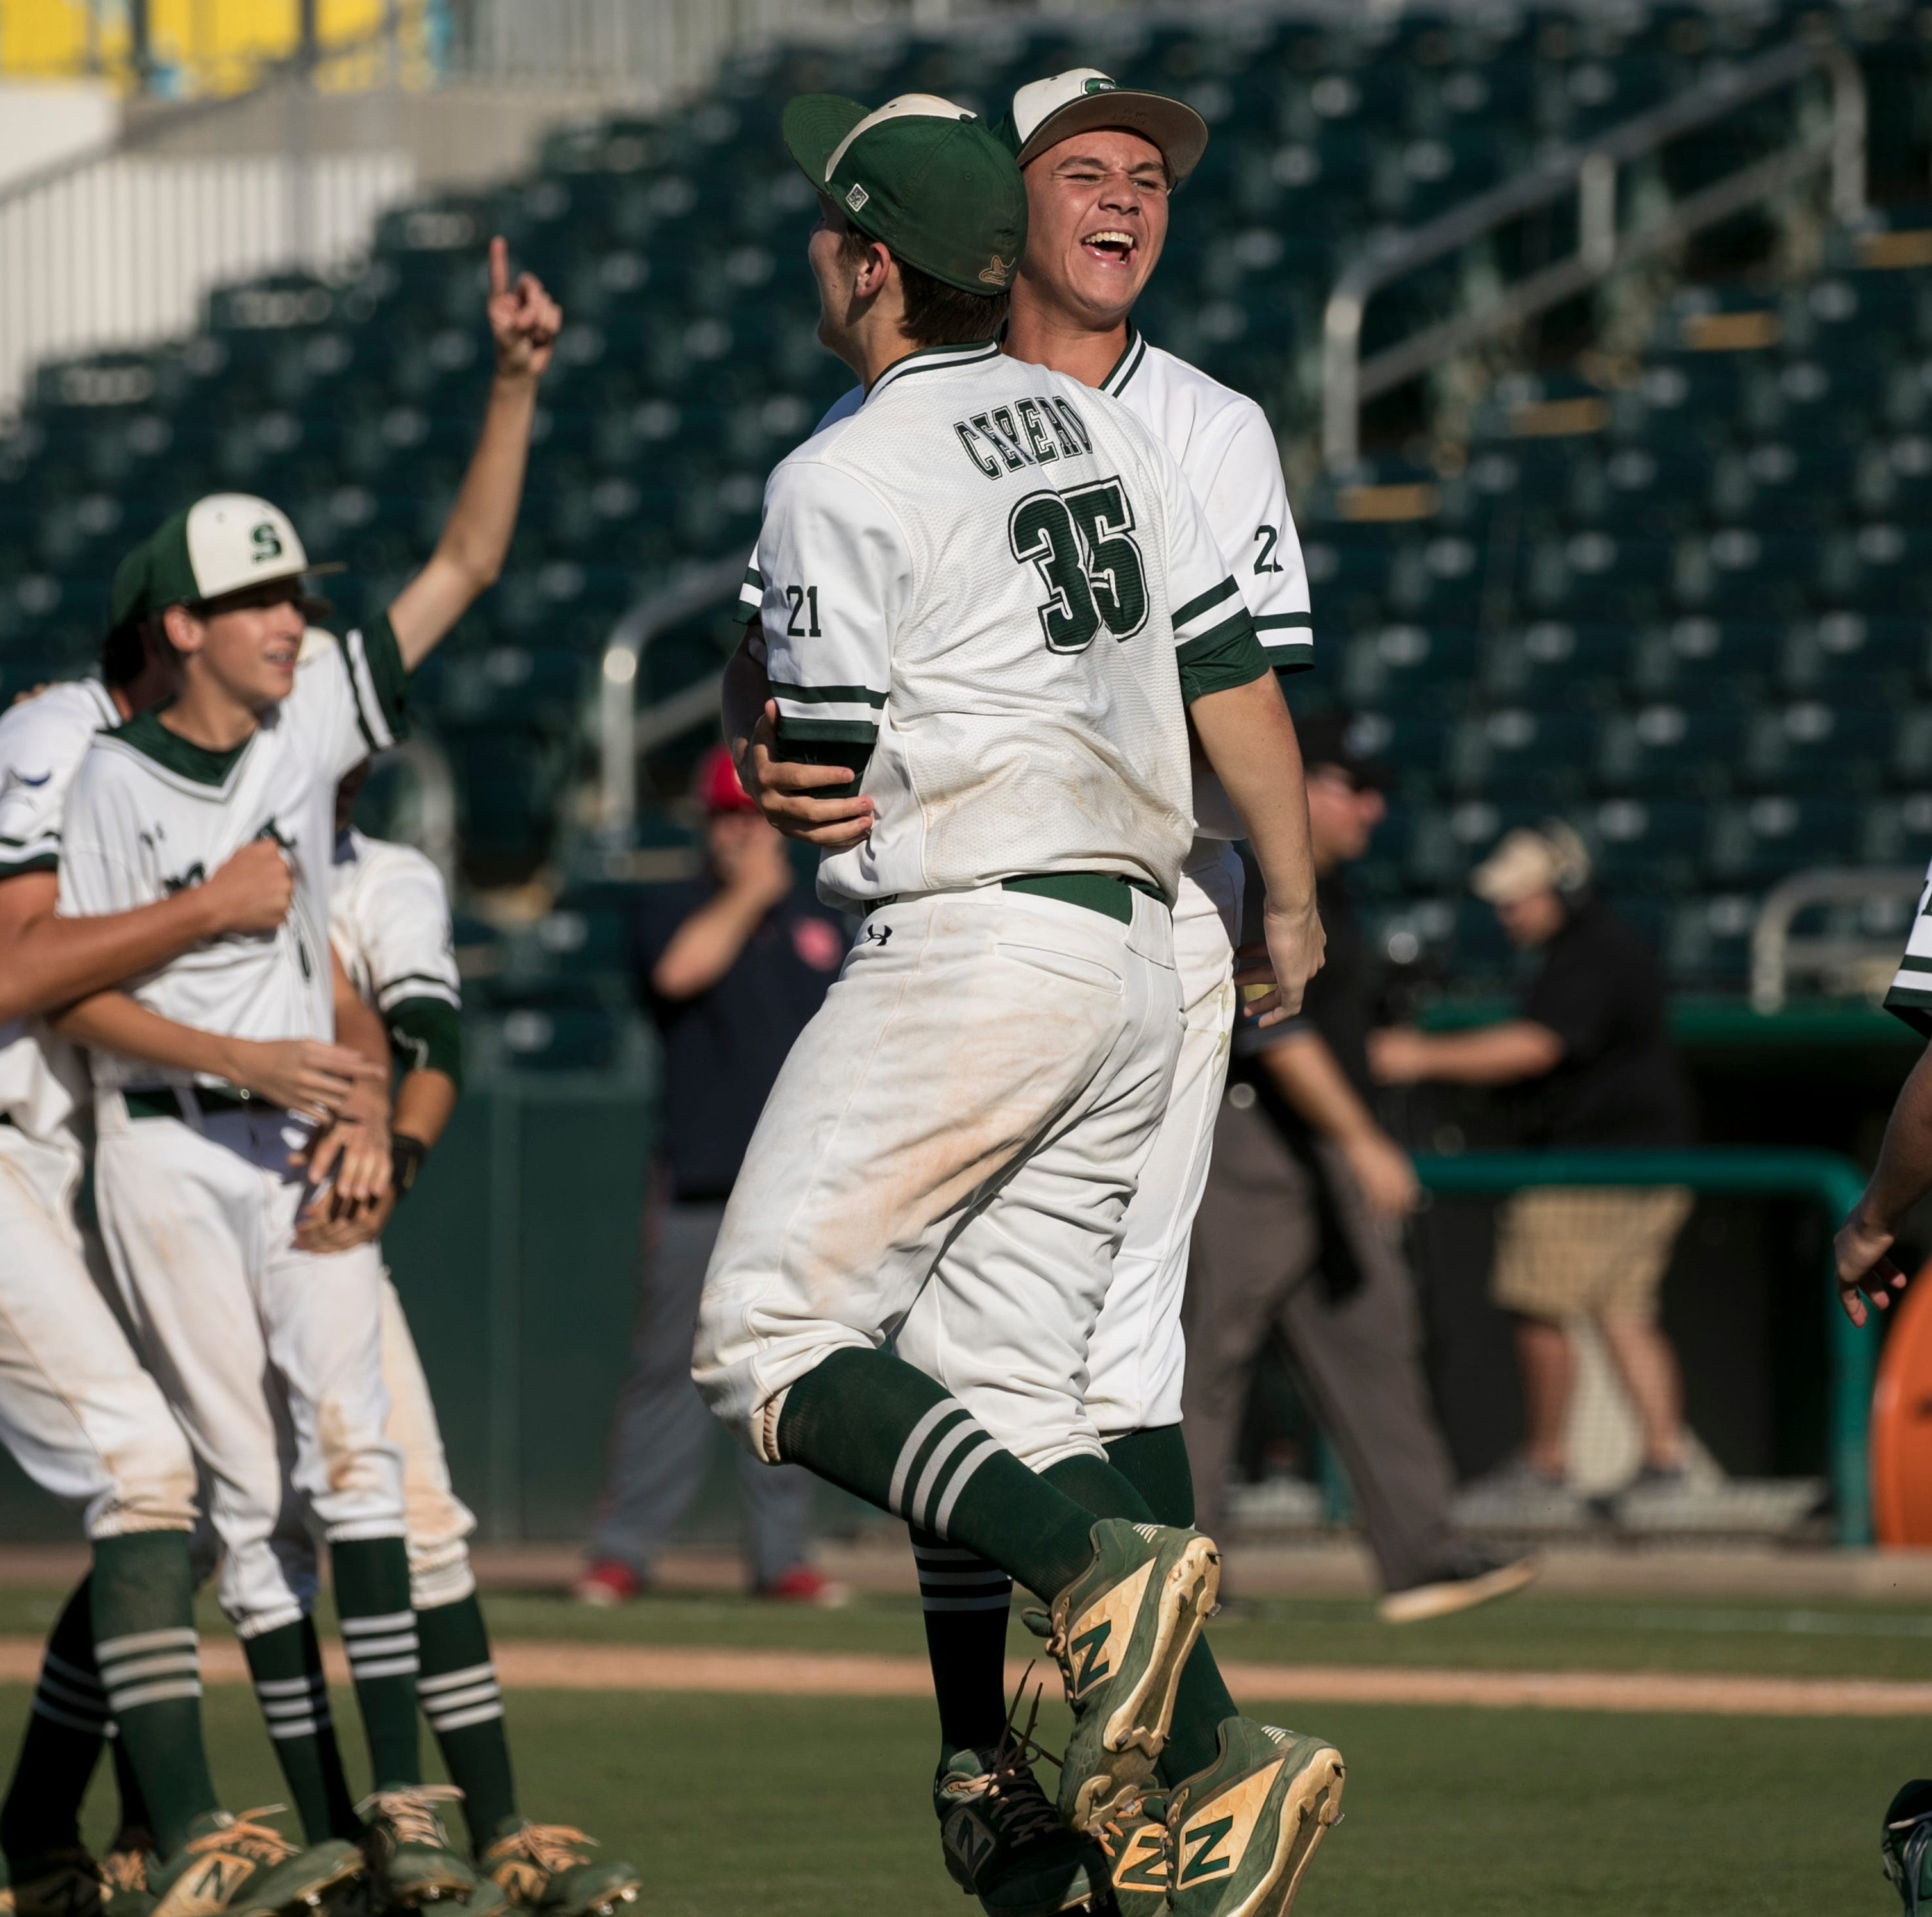 High school baseball: Seacrest advances to Class 2A state final